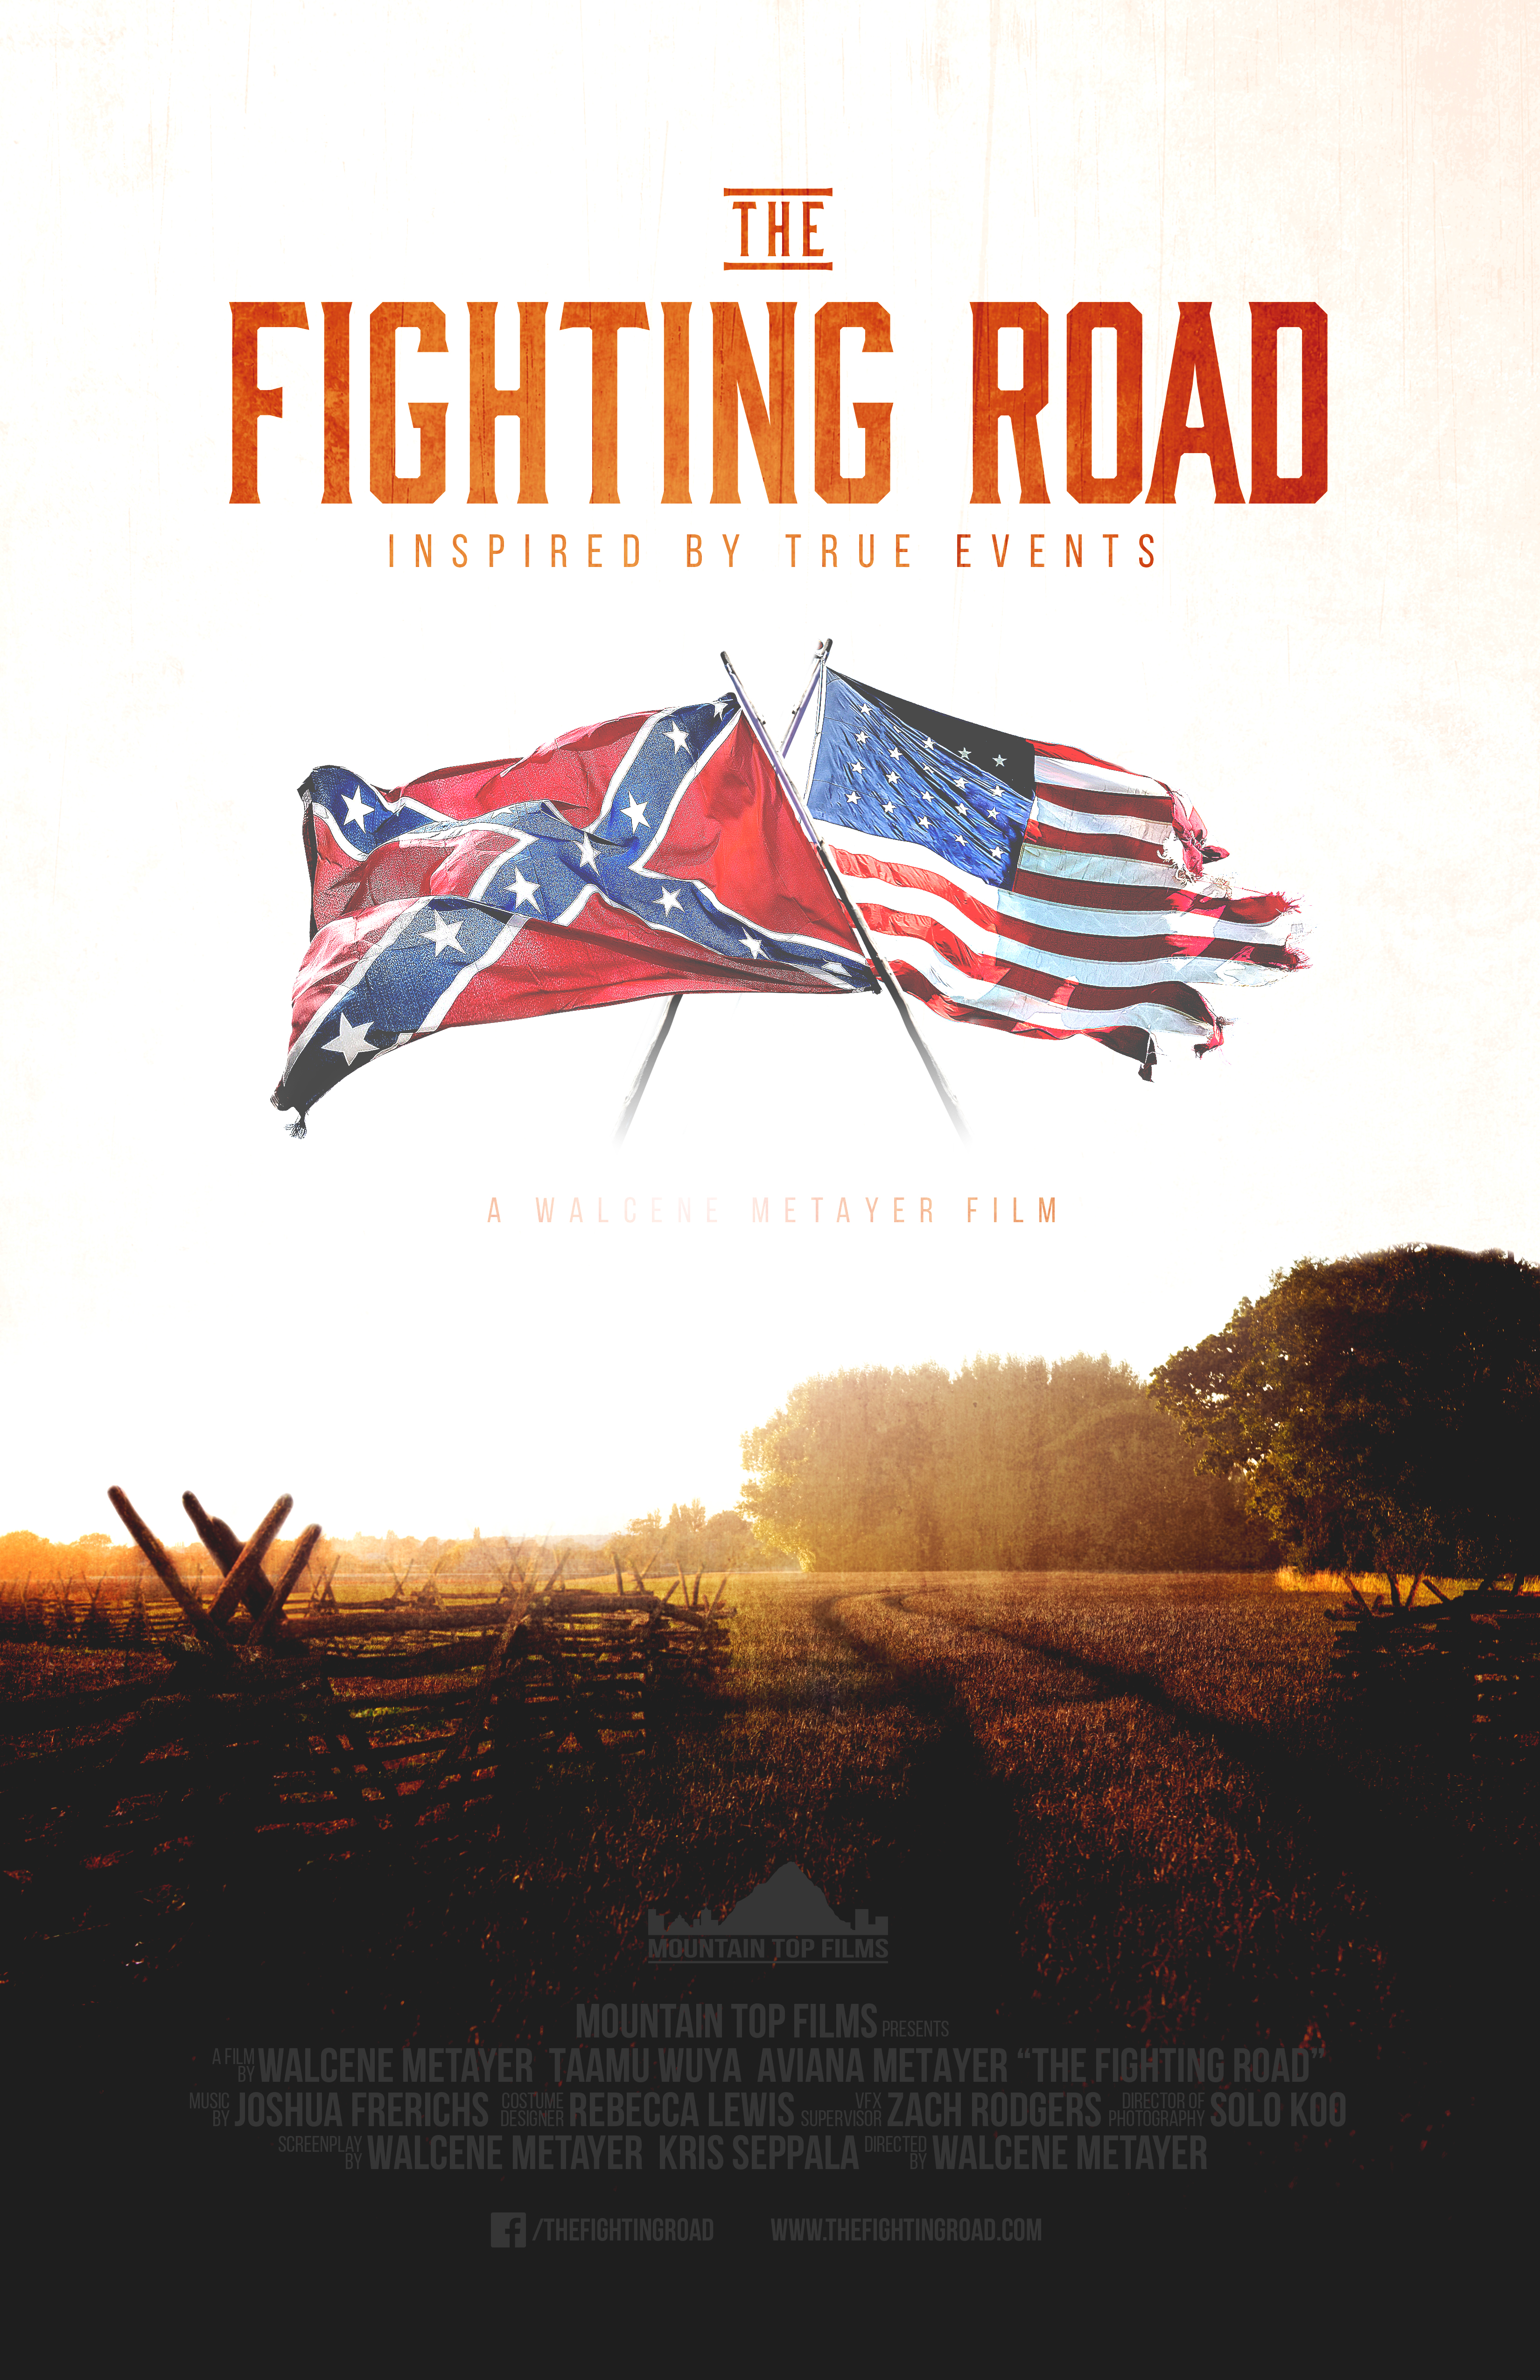 The Fighting Road